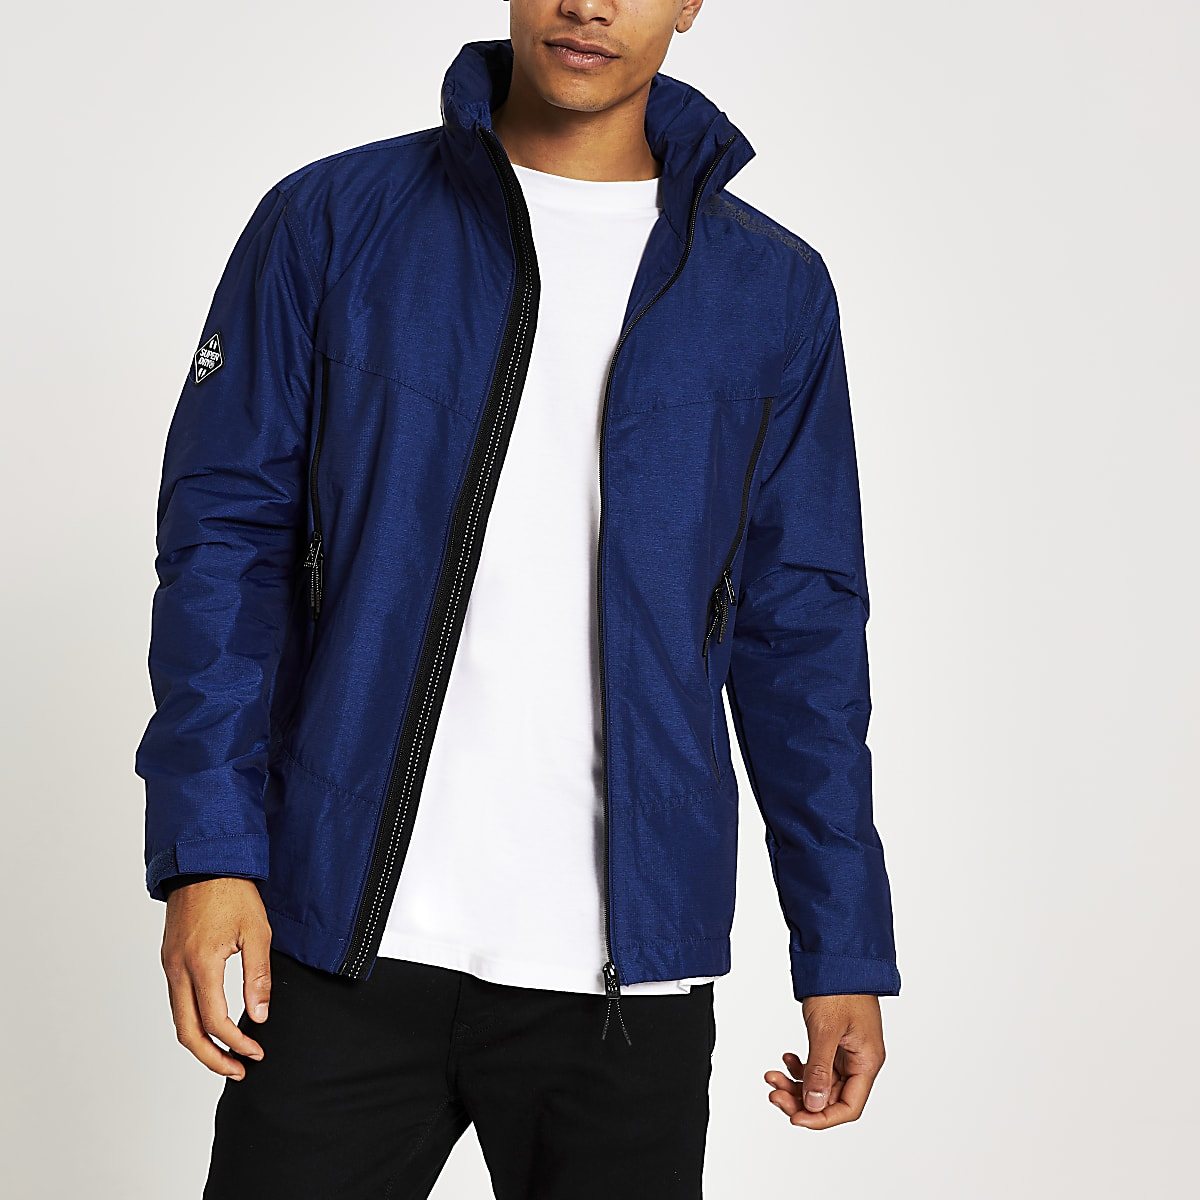 Superdry blue lightweight jacket